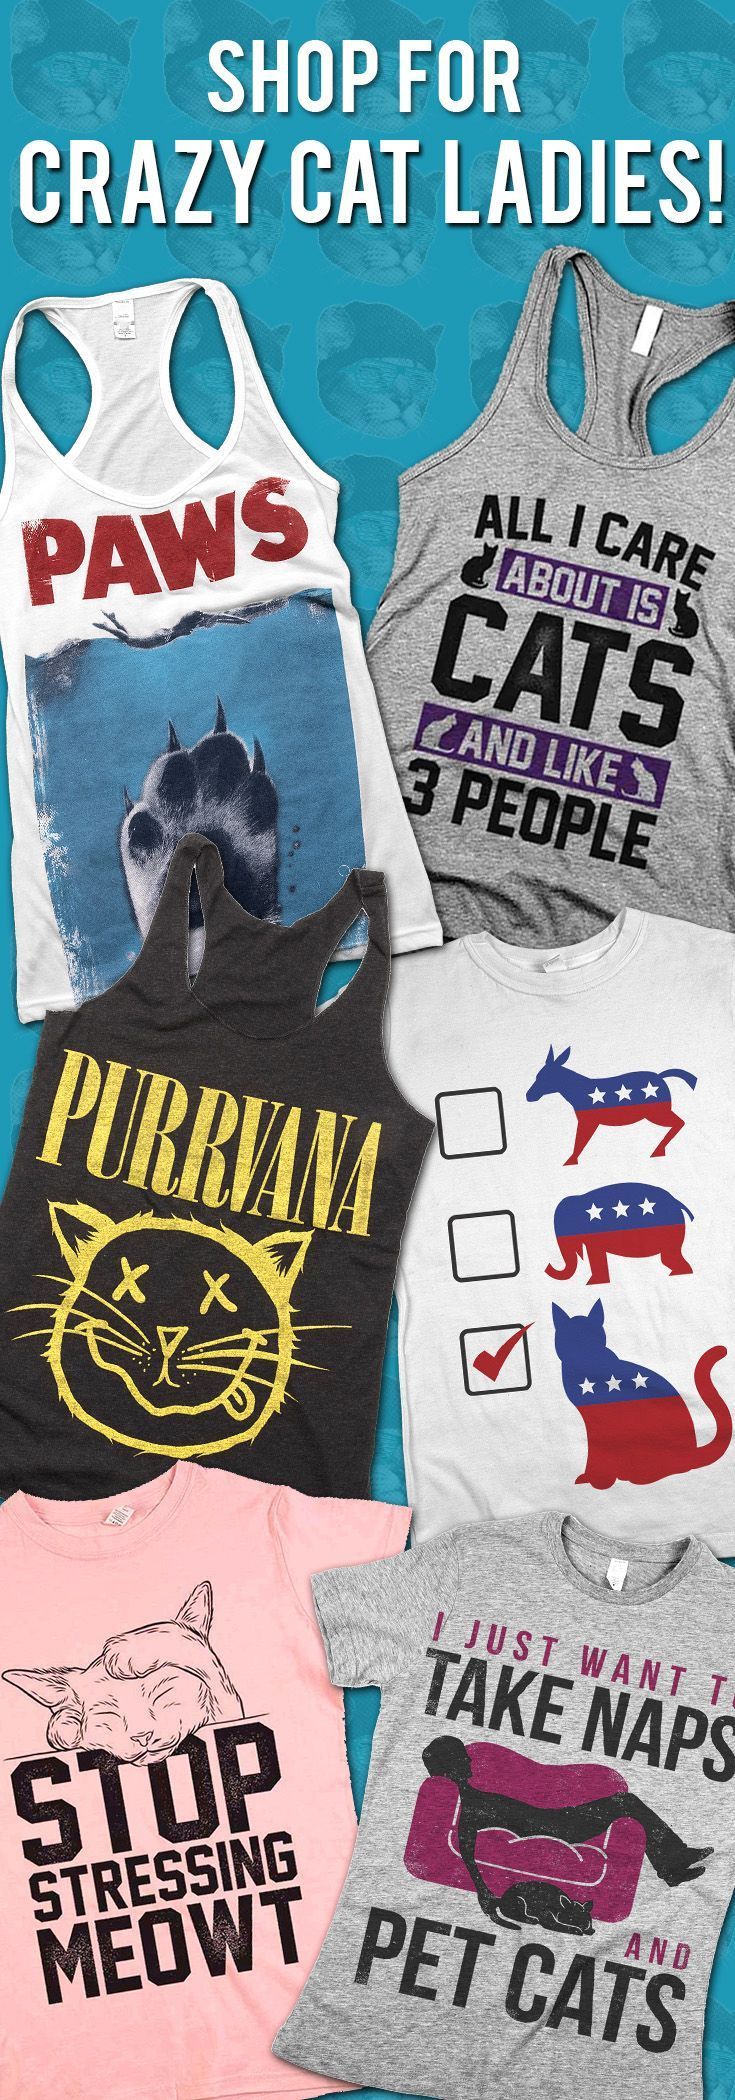 Shop our huge selection of apparel and gifts for cat lovers! FREE SHIPPING through the end of the week!